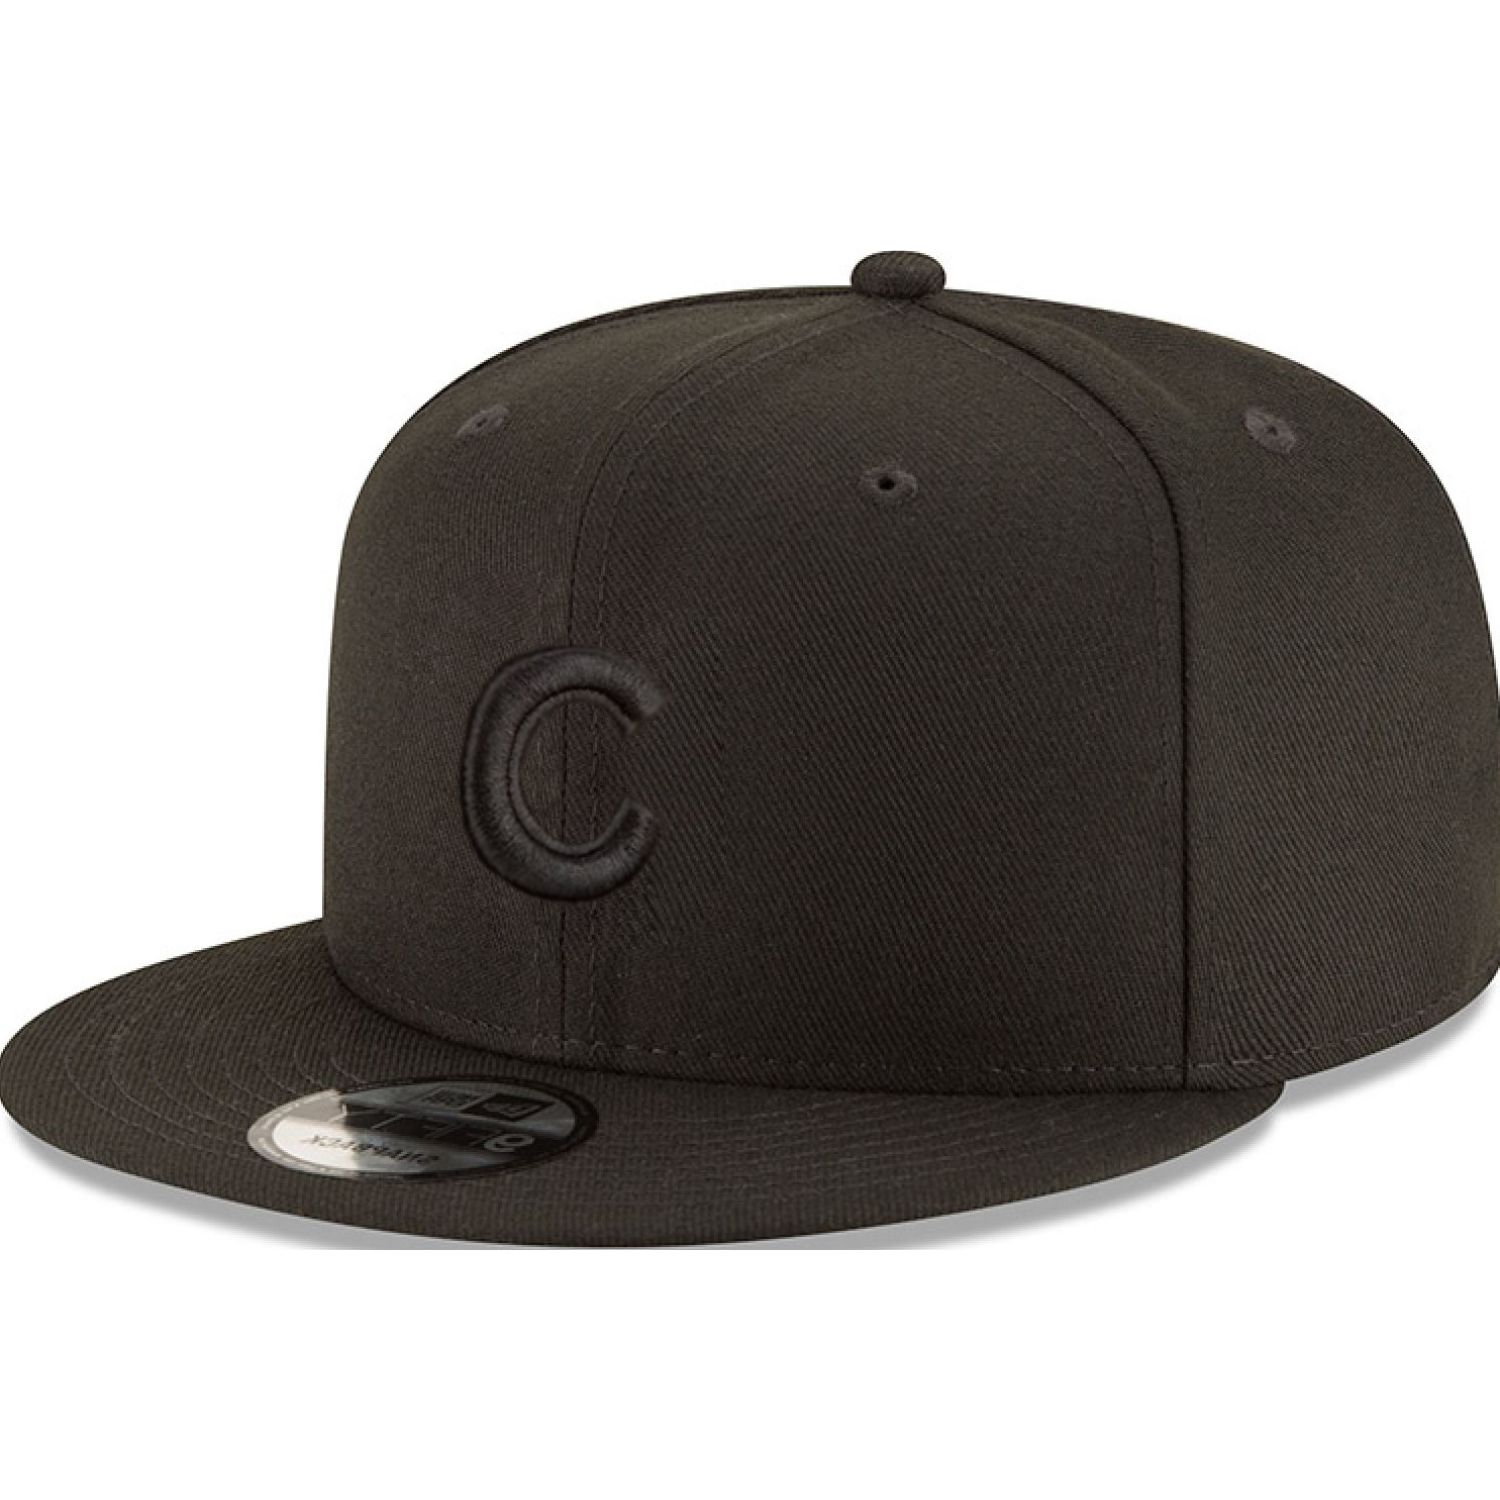 NEW ERA mlb basic snap 950 chicub blkblk Negro Chullos y Gorros